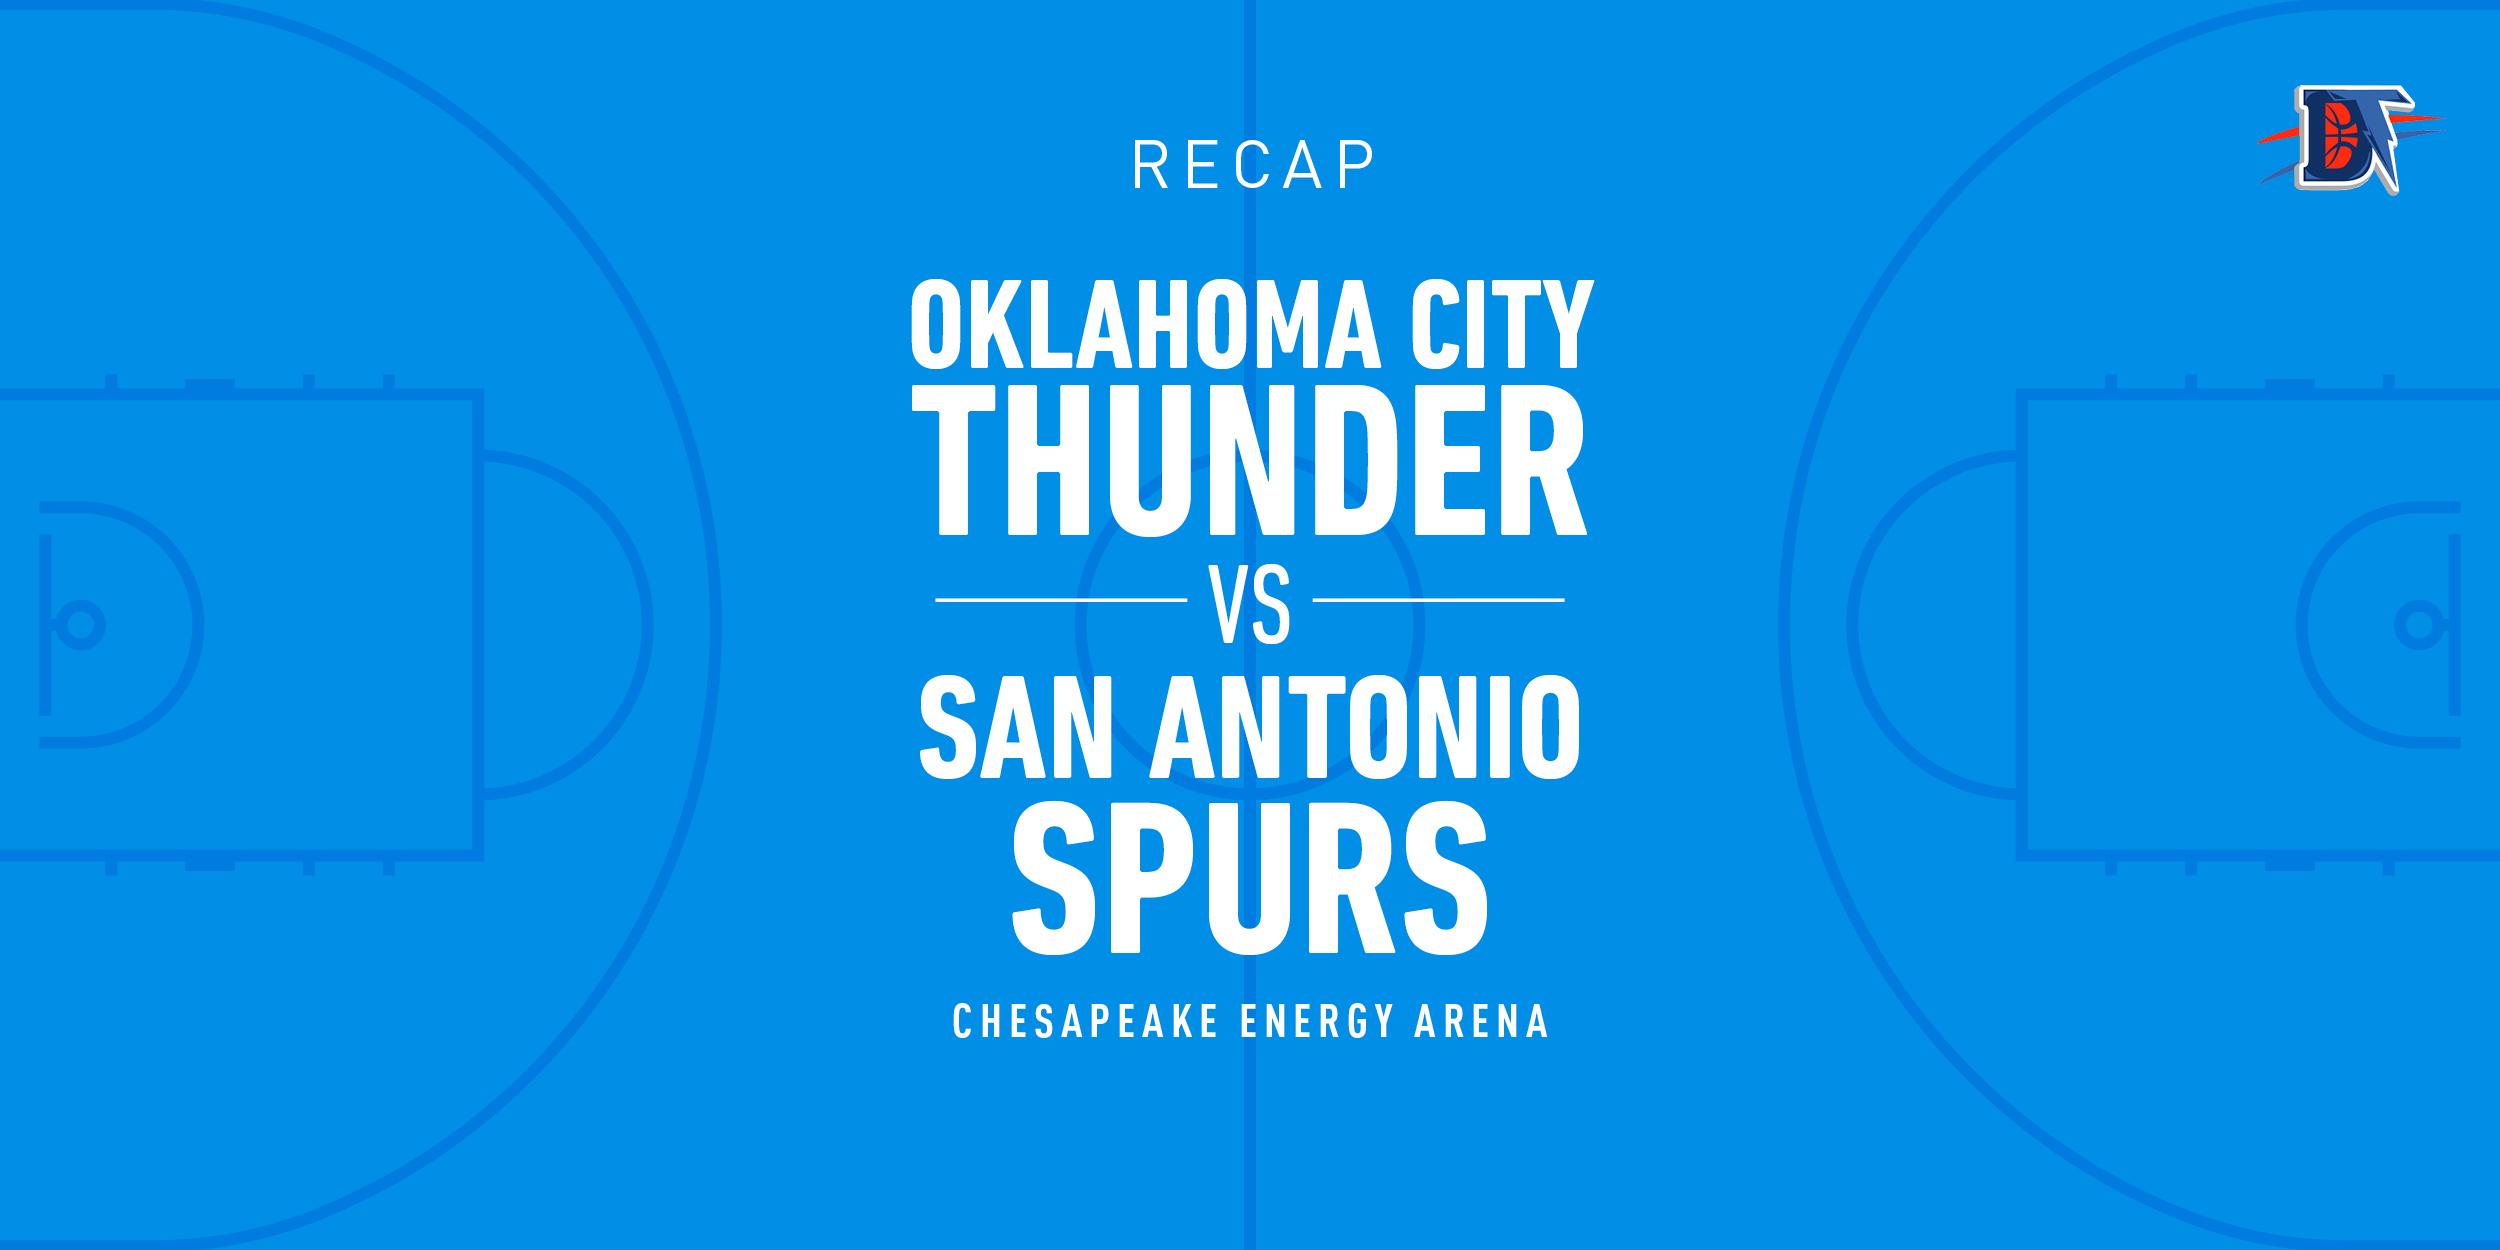 Game 36 Rapid Recap: Thunder (15-21) def. Spurs (18-14) 107-102